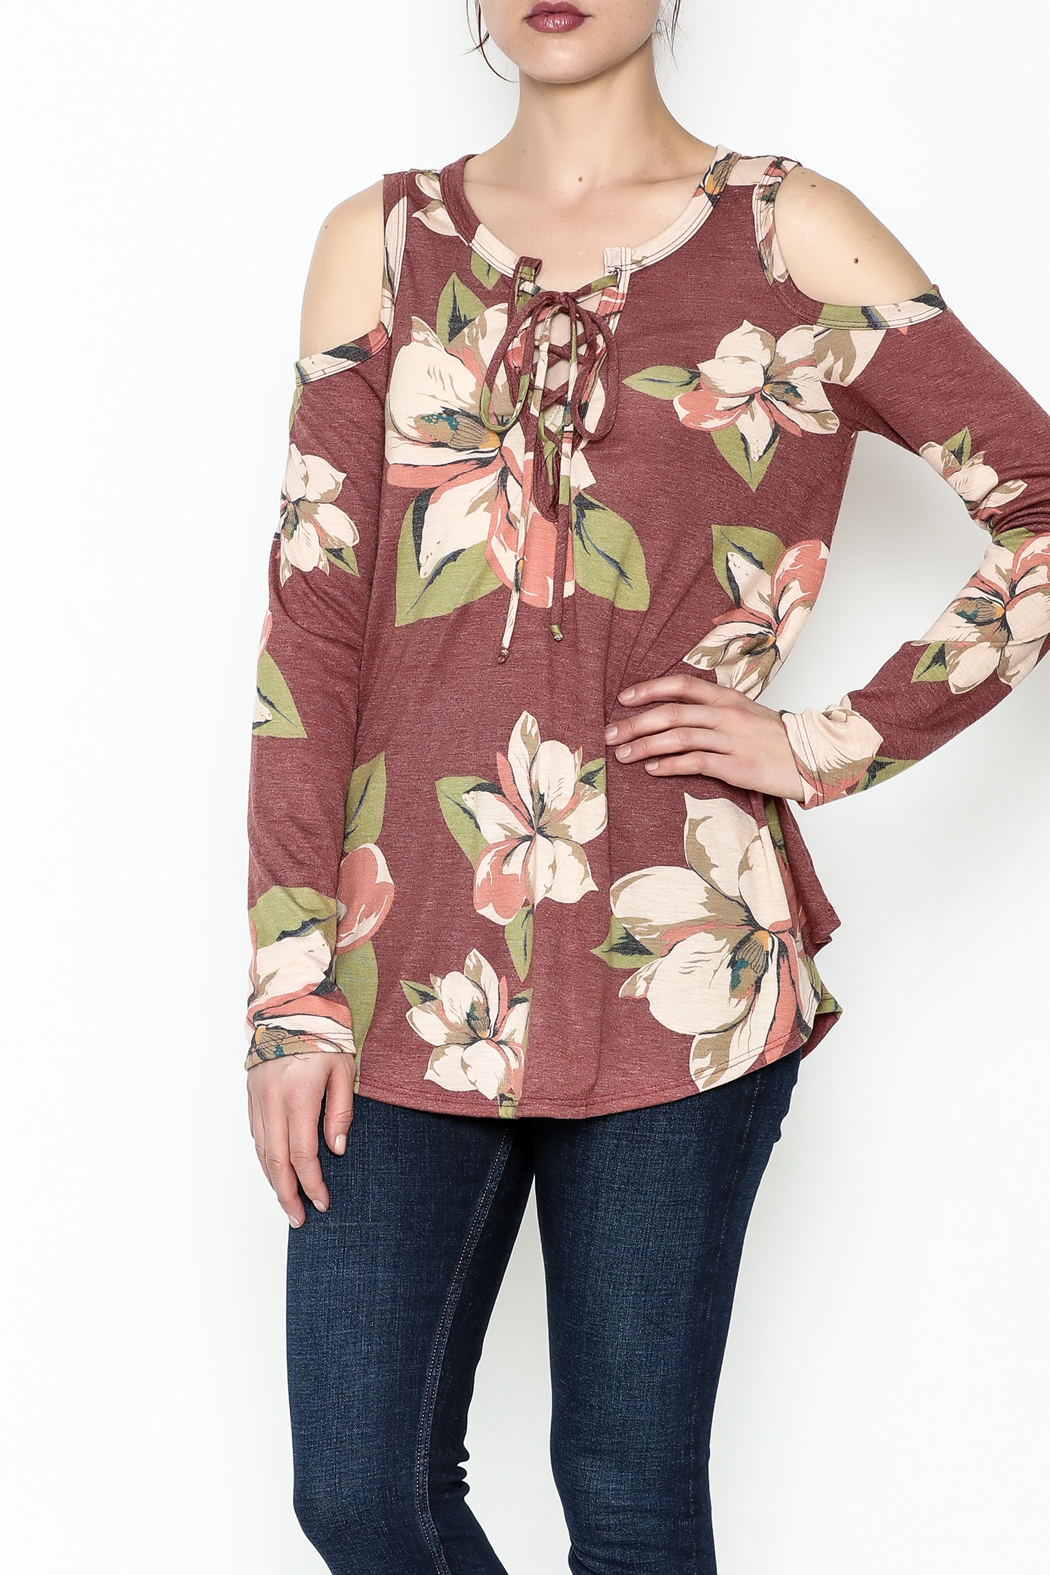 Cherish Vintage Floral Top - Front Cropped Image